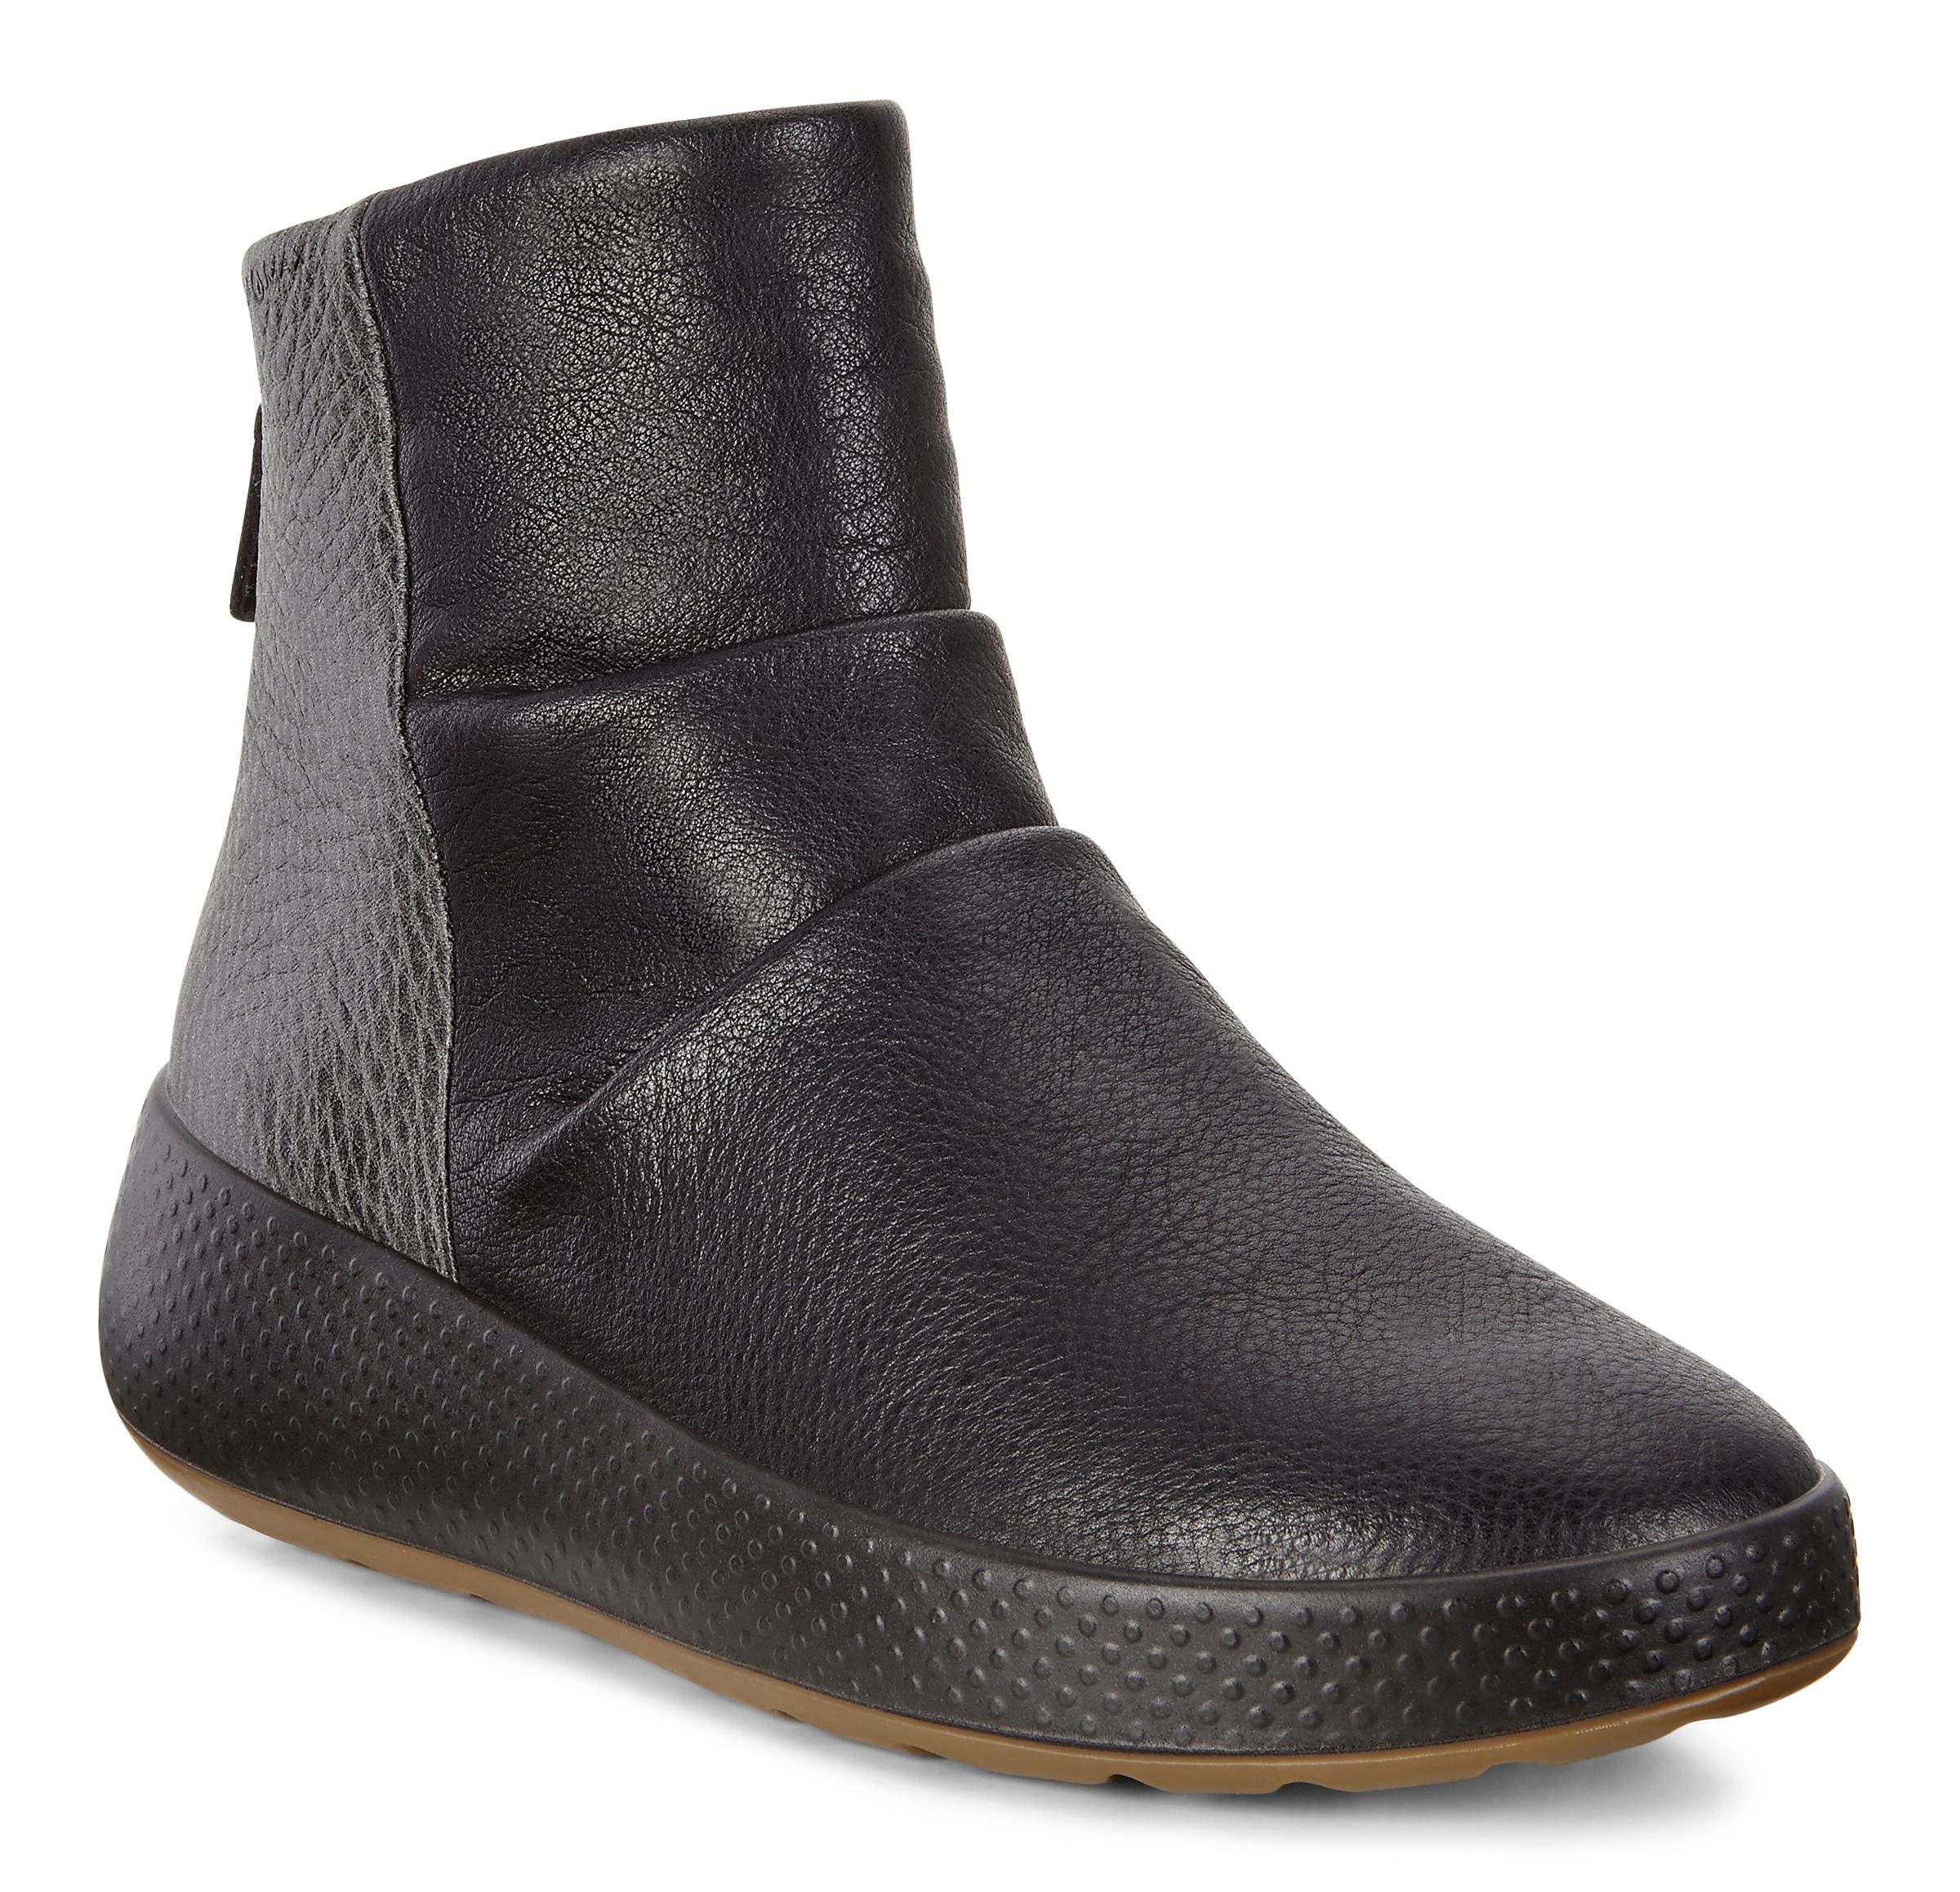 ECCO 221073 Ukiuk Shinebright Boot Ladies Casual Boots in Black